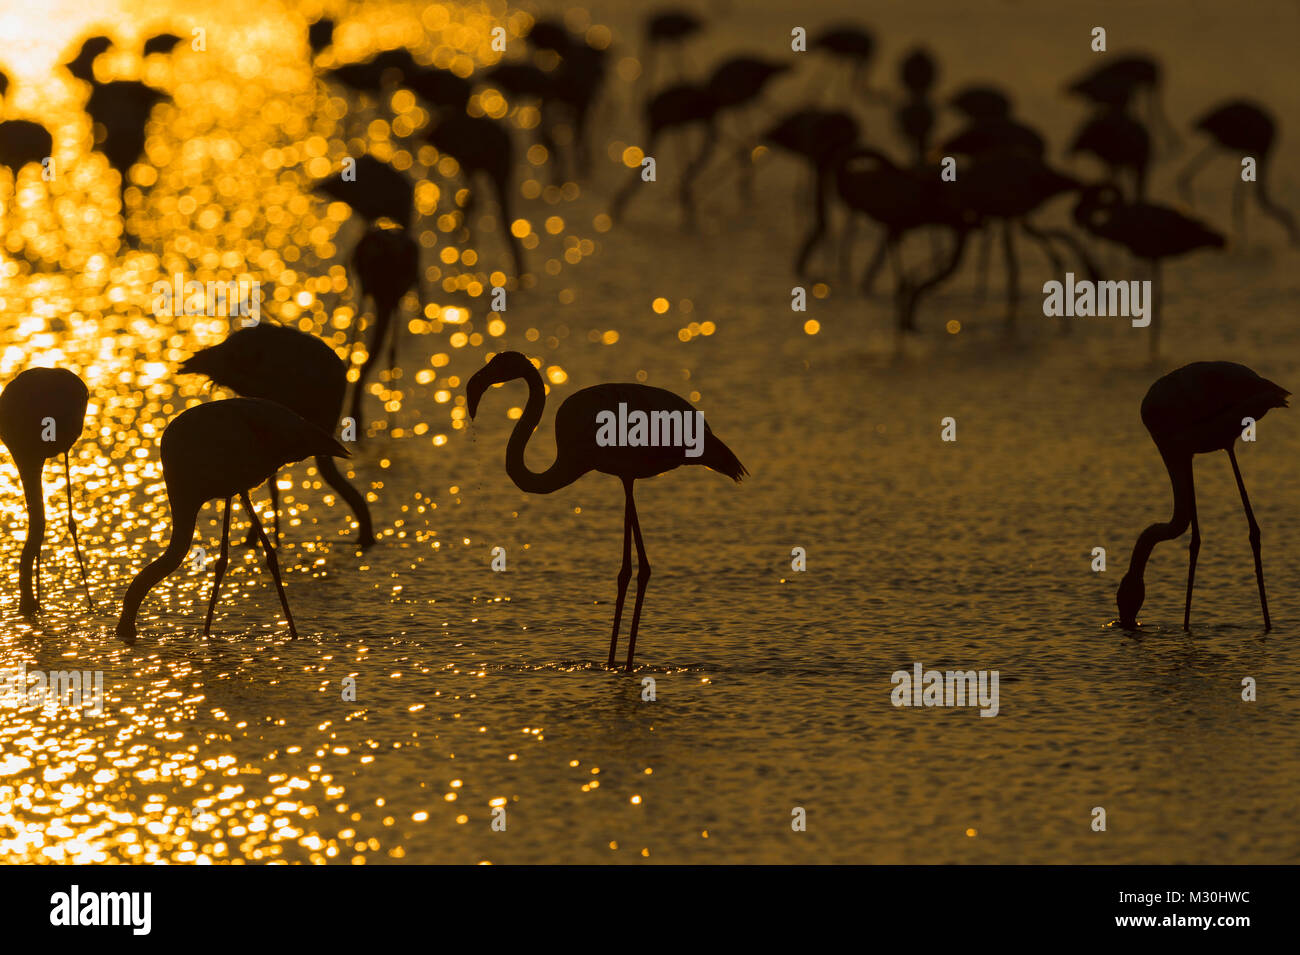 European Flamingo, Great Flamingo, Phoenicopterus roseus, at Sunrise, Saintes-Maries-de-la-Mer, Parc naturel régional - Stock Image